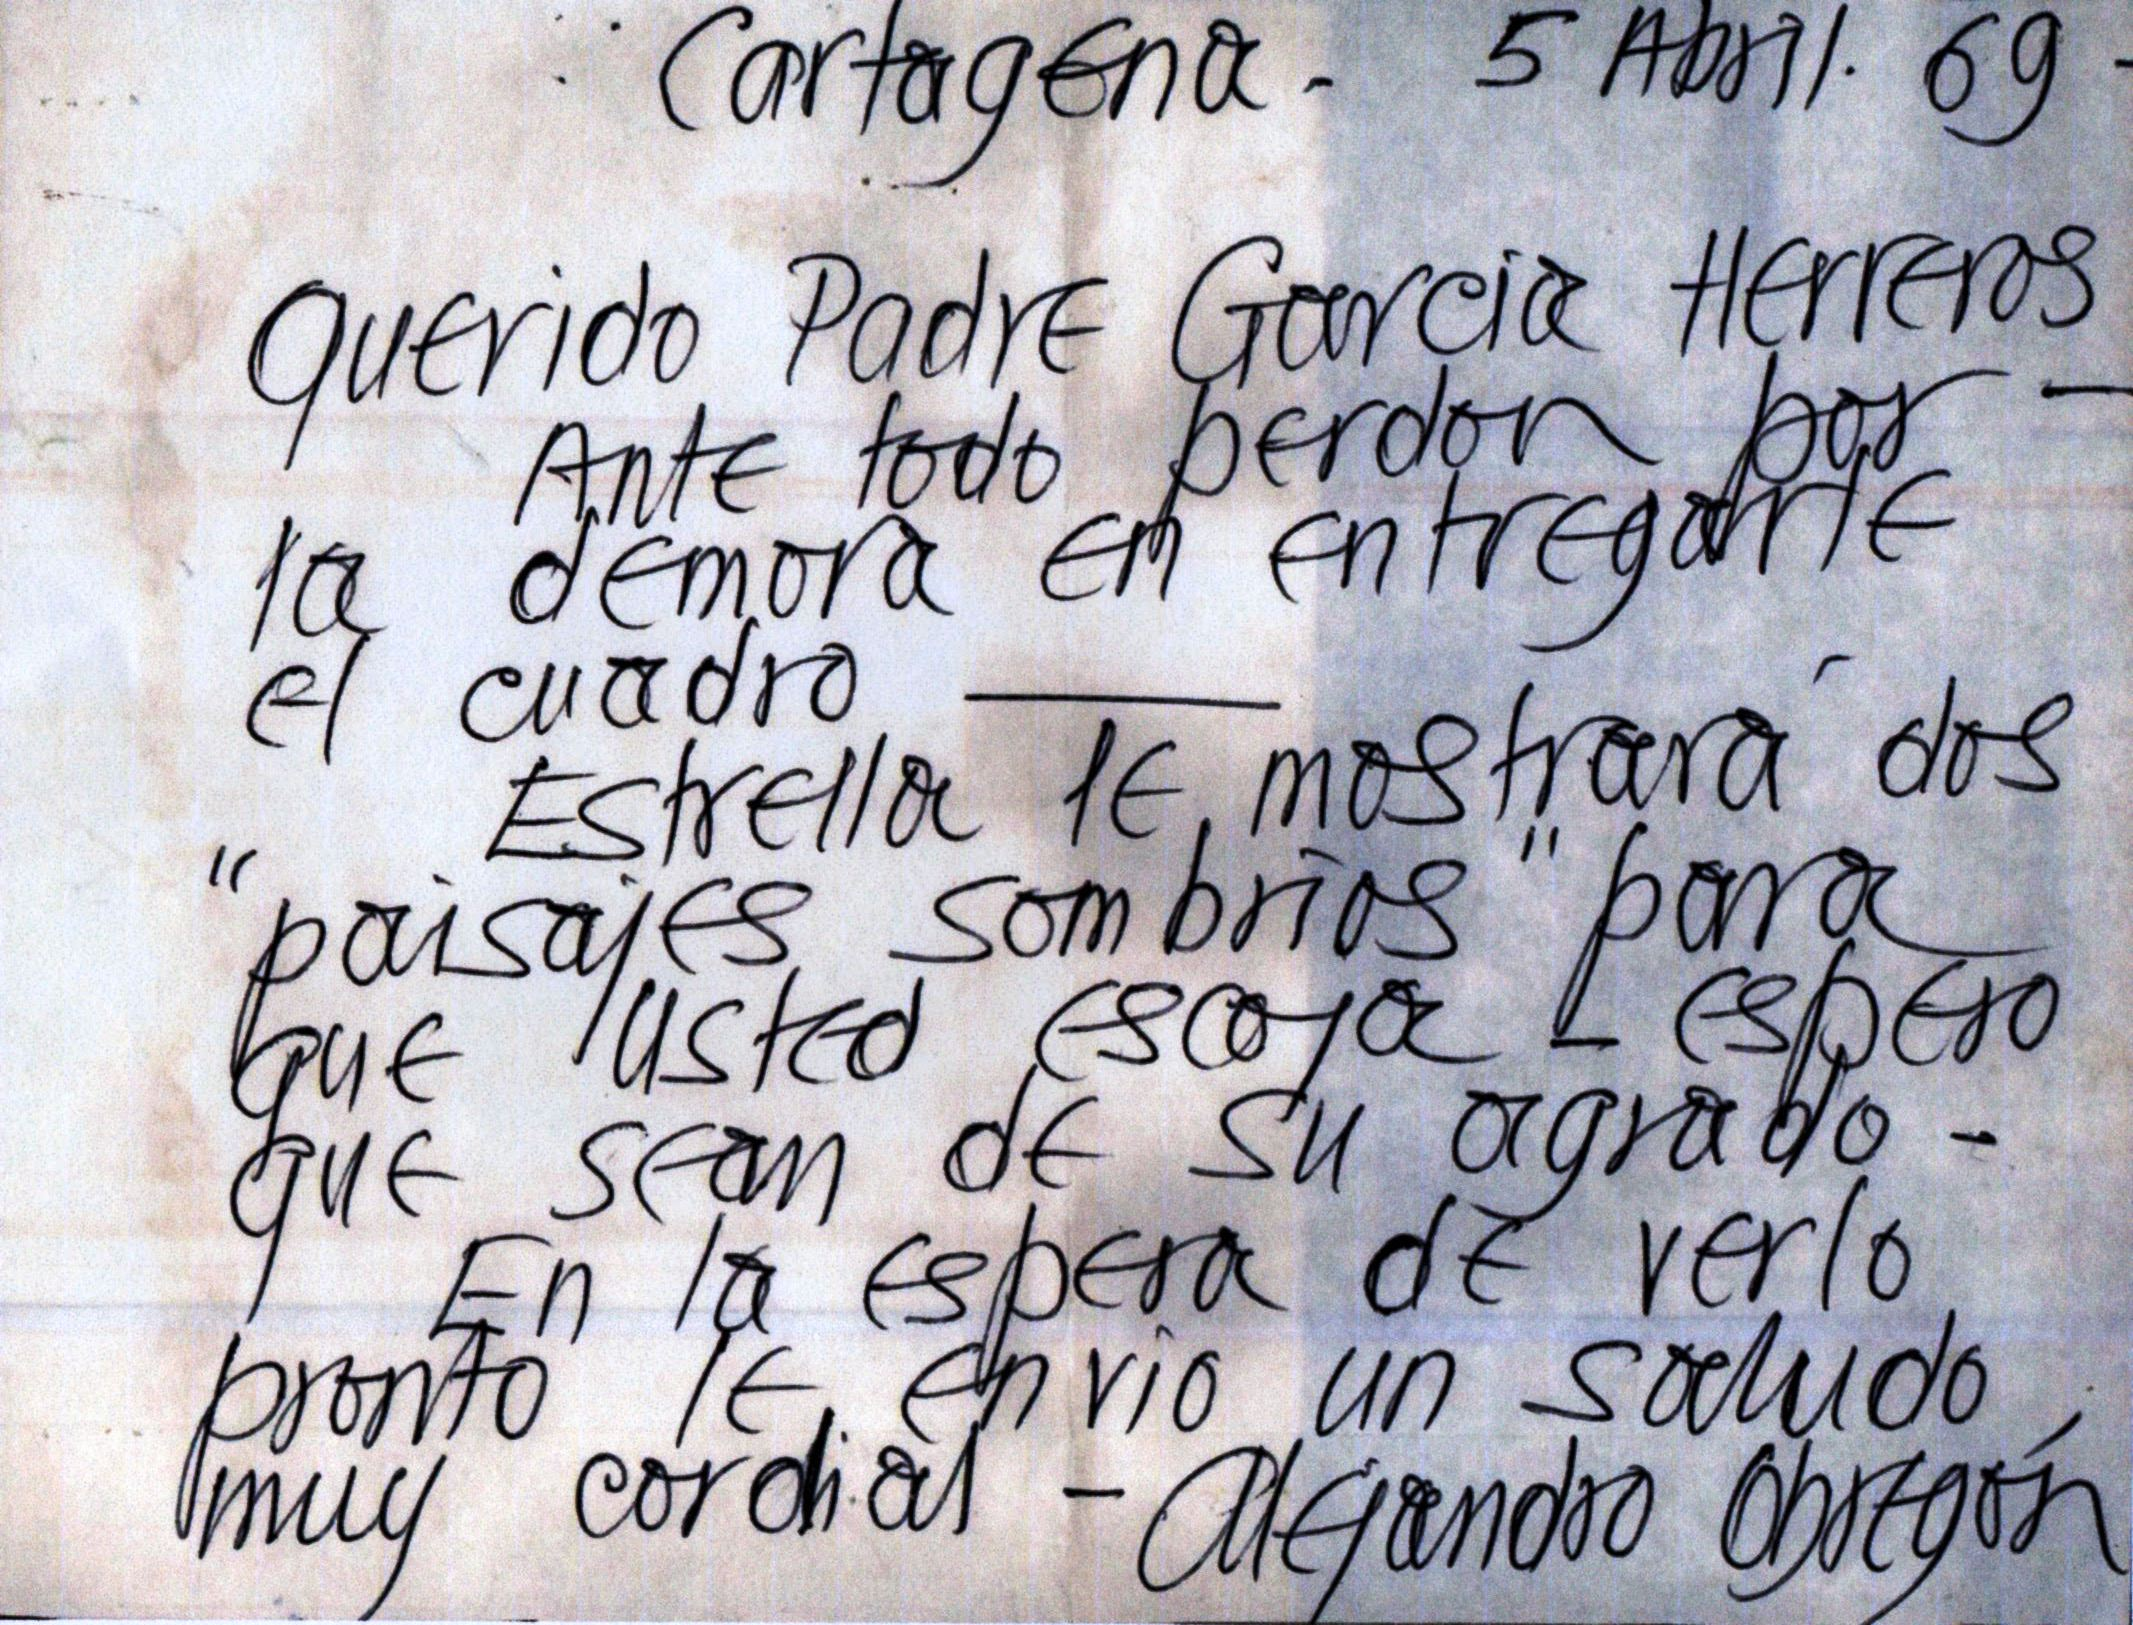 carta obregon